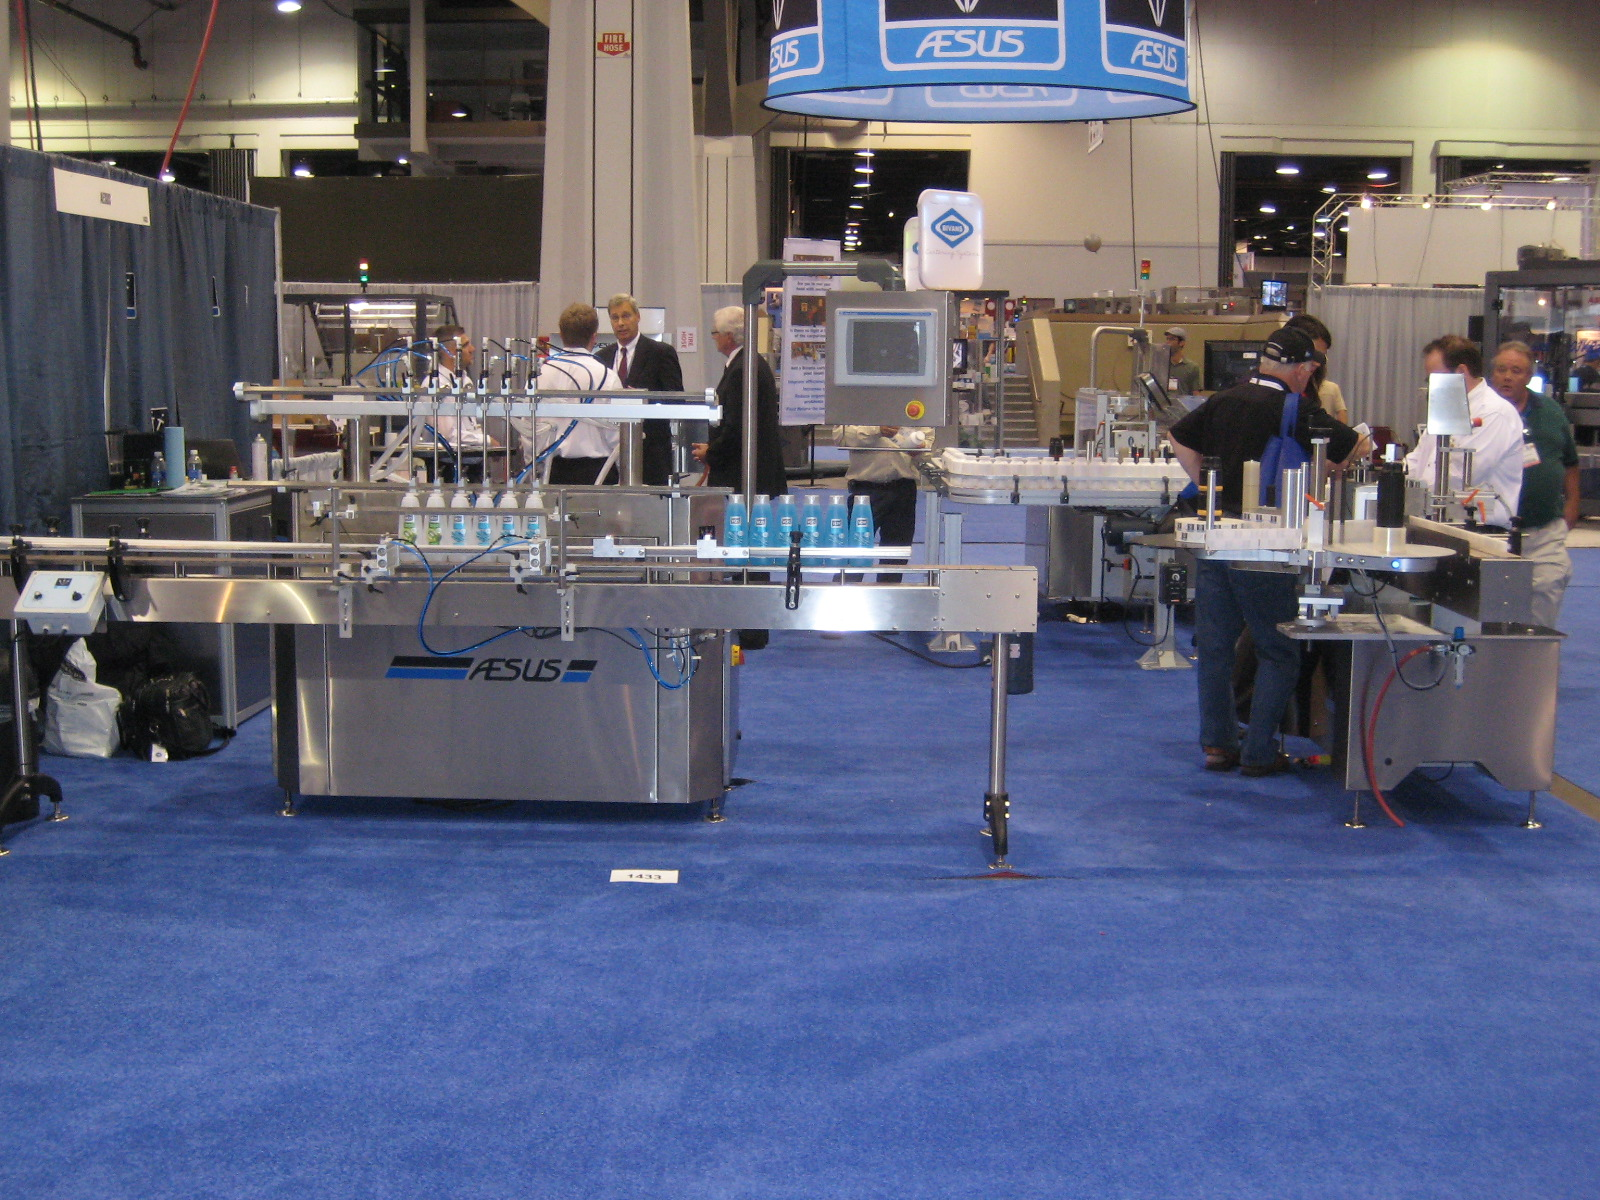 A filler machine at the Pack Expo in Las Vegas. Attendants are showing visitors how the bottles are filled on a packaging line